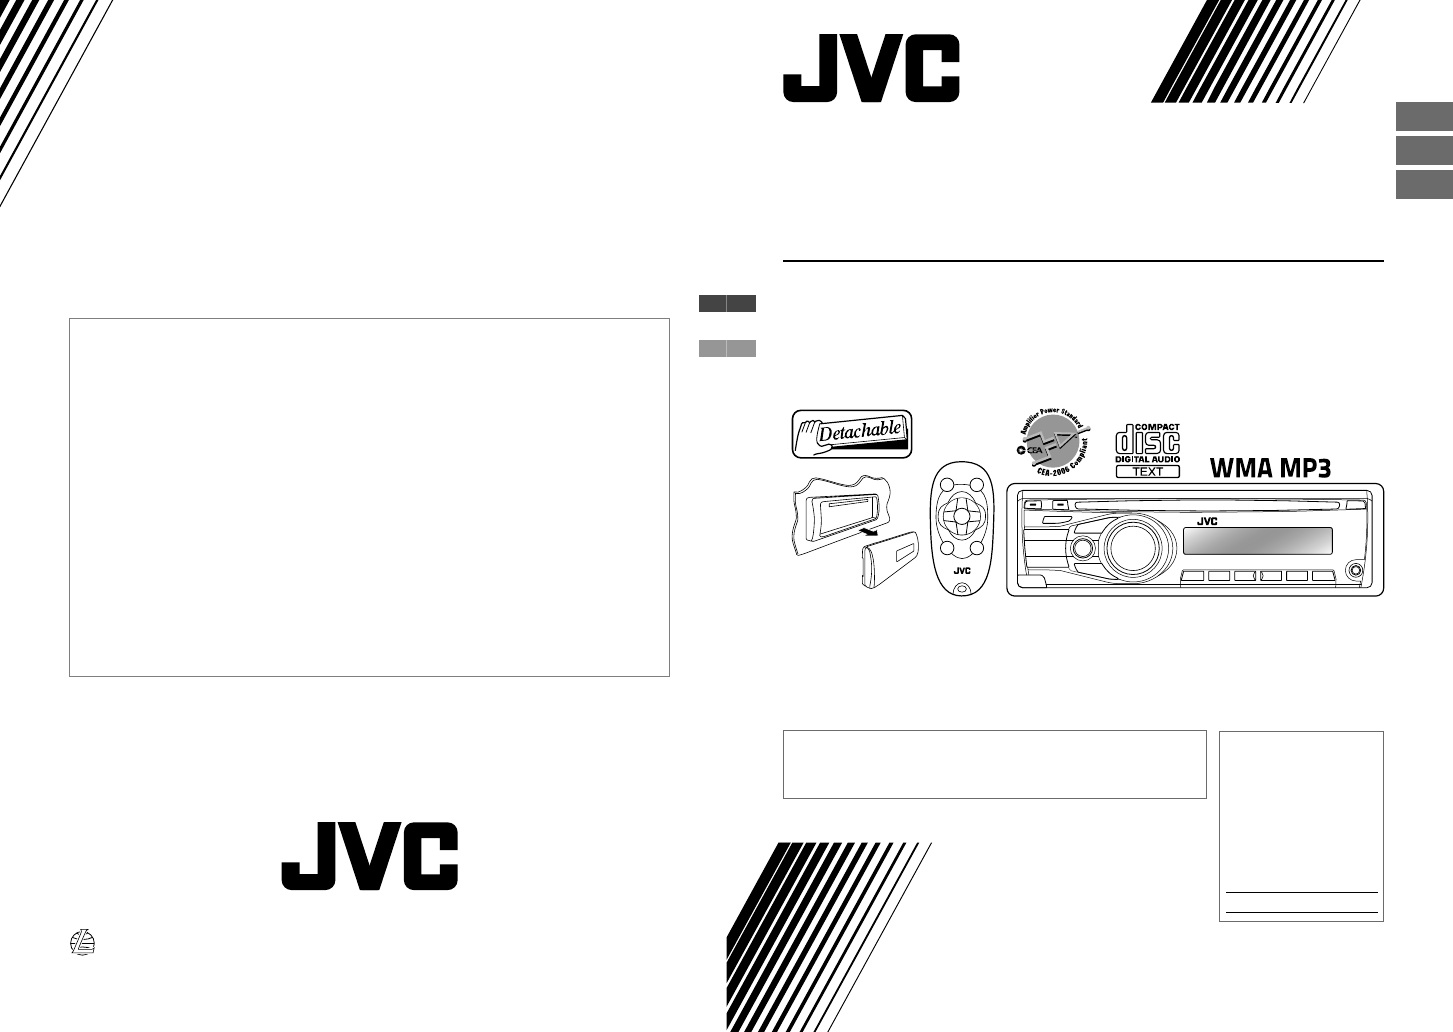 E363 Jvc Kd R320 Wiring Diagram Model | Wiring Resources Jvc Wiring Diagram Car Stereo on jvc kd r330 miswiring, camera shutter mechanism diagram, jvc kd 320 manual, jvc kd-sr40, pioneer car stereo connector diagram, jvc kd s28 wiring-diagram, sony xplod head unit wiring diagram, radio wiring diagram, car audio wiring diagram, jvc kd-r650, jvc kd g230 instruction manual, jvc kd r530 wiring-diagram, jvc hdtv manual, jvc kd s79bt manual, jvc kd-a805, jvc harness diagram, kenwood speaker wiring diagram, jvc radio wiring check,